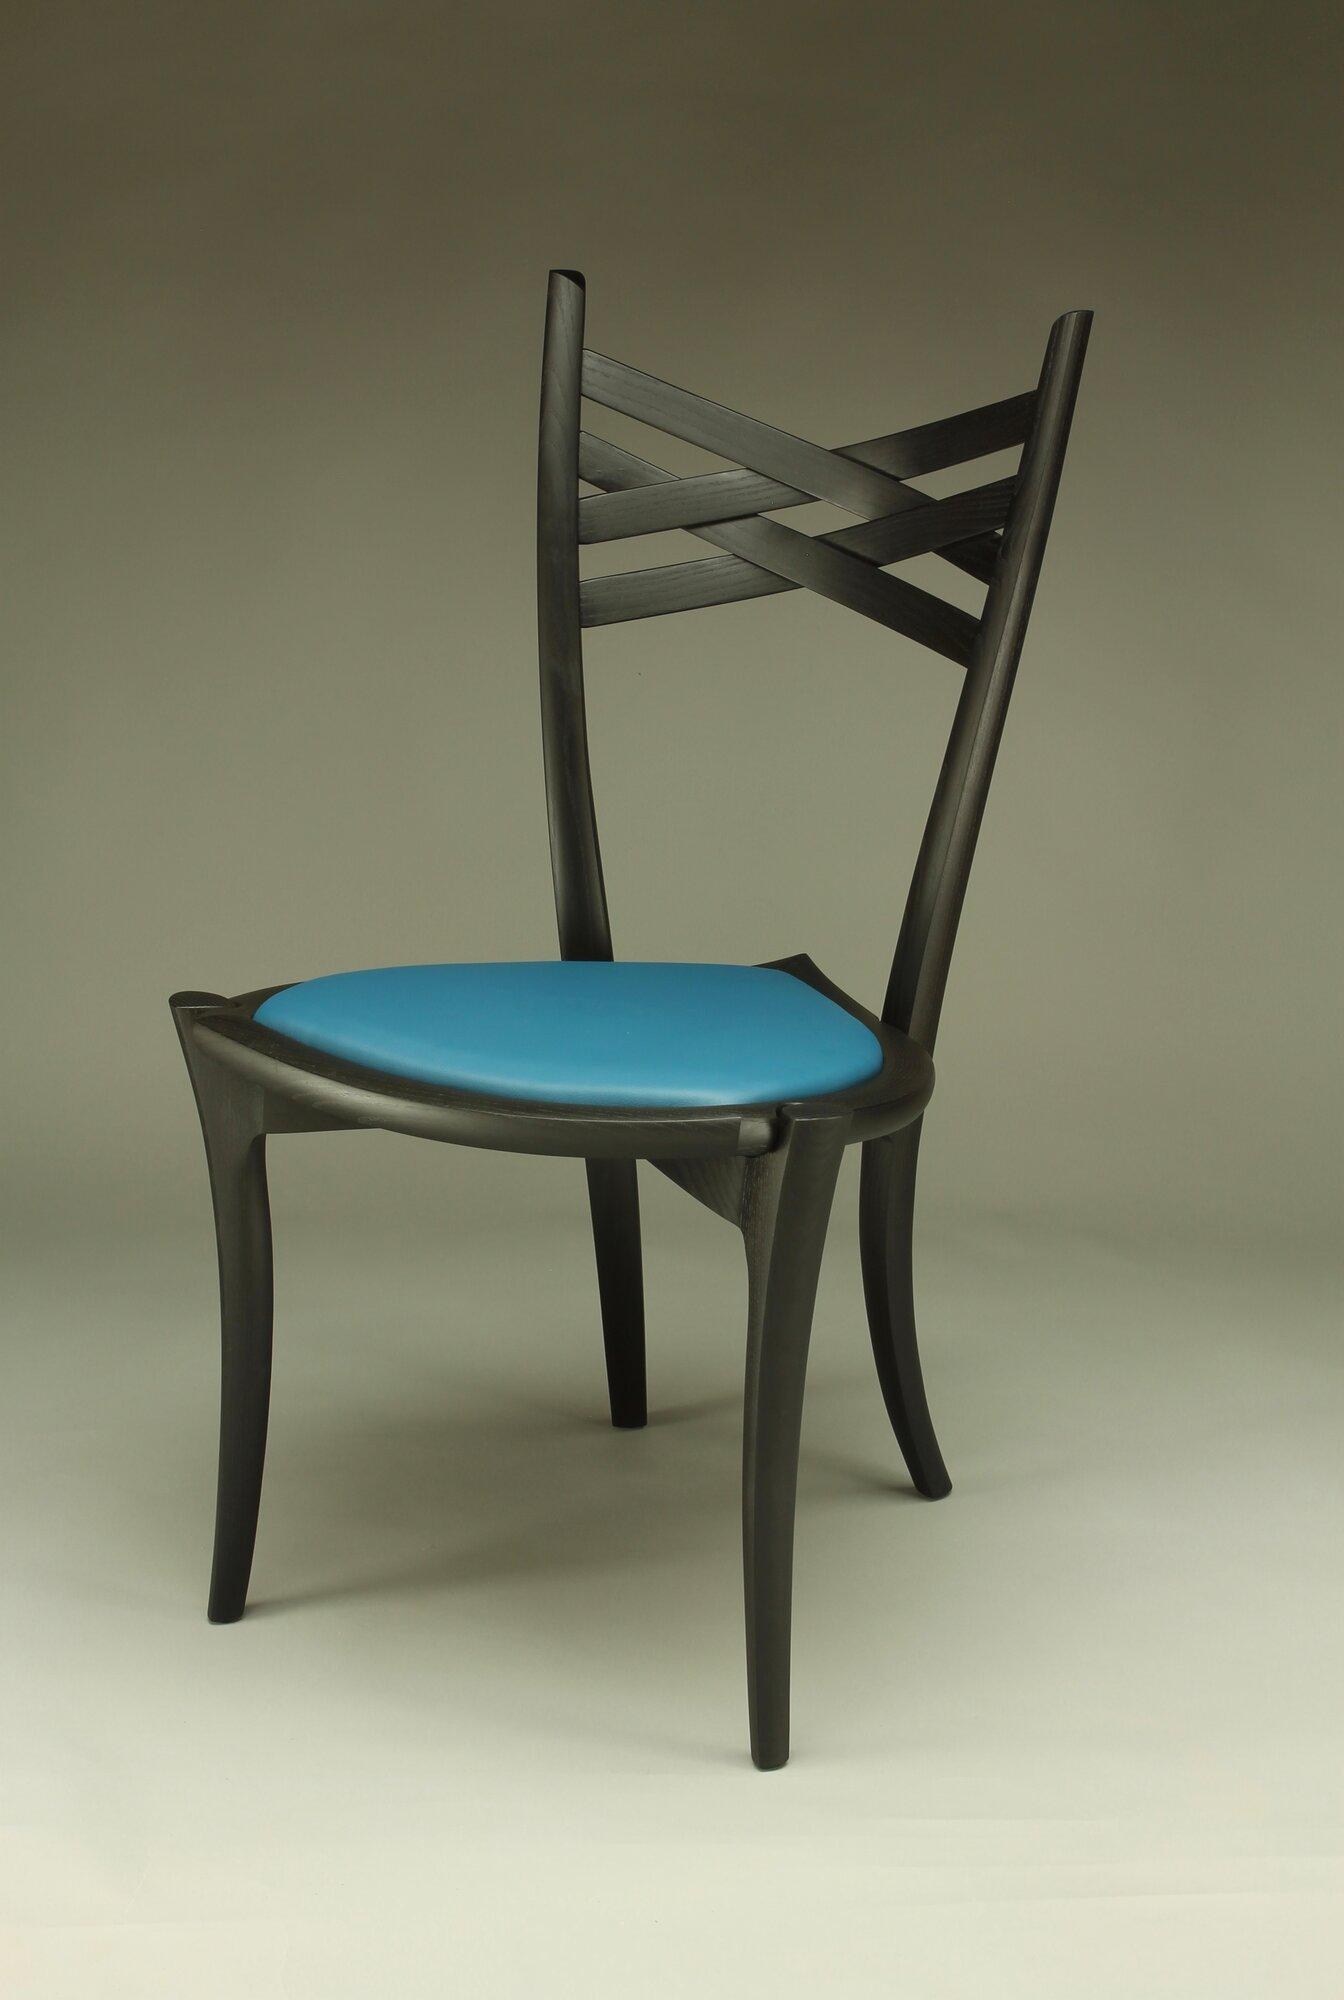 penelope cruz dining chair